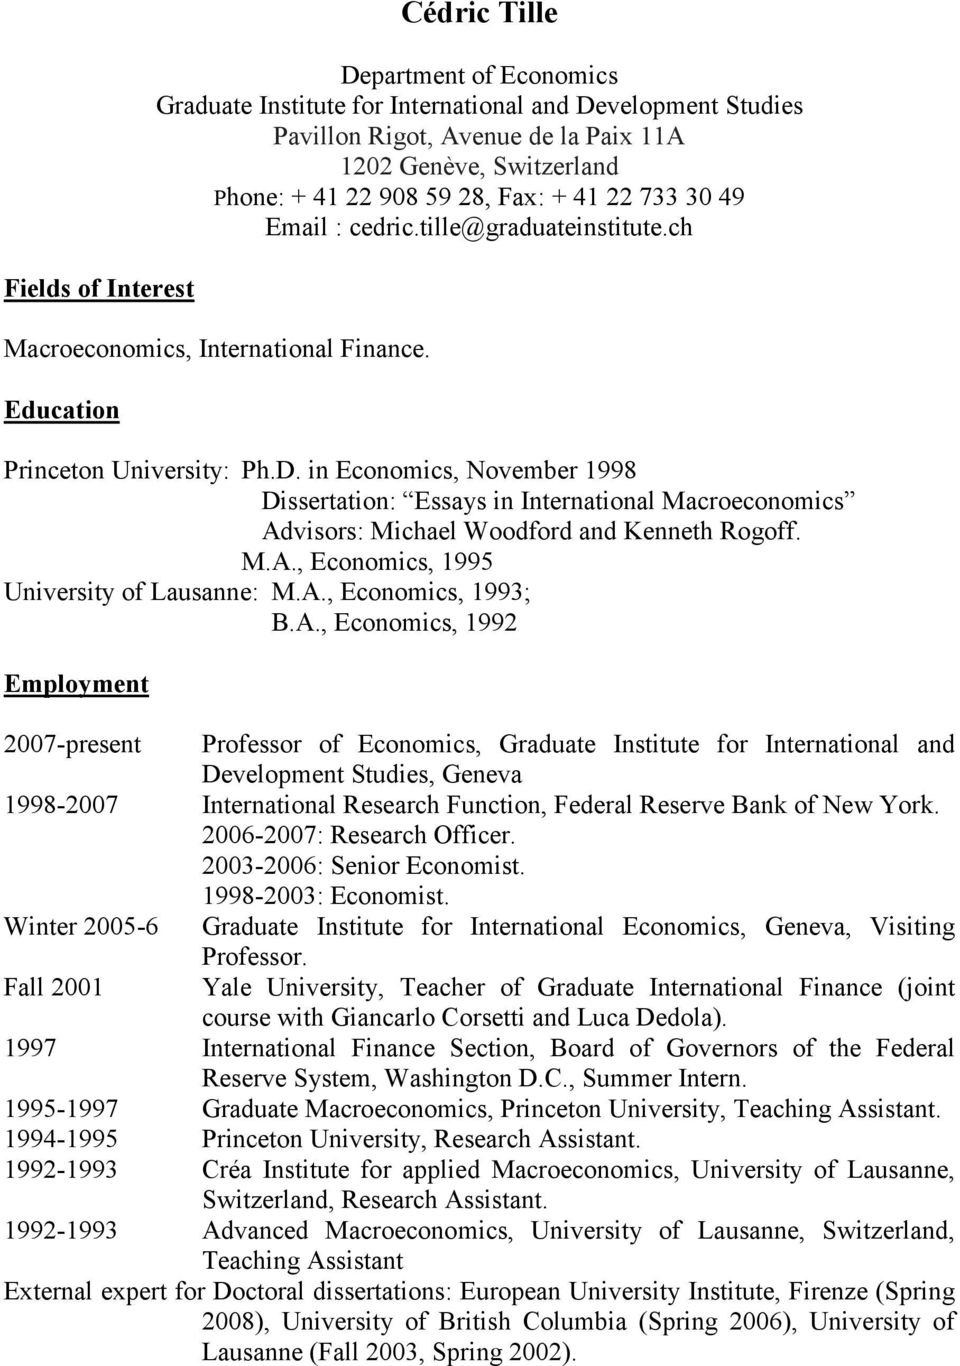 in Economics, November 1998 Dissertation: Essays in International Macroeconomics Advisors: Michael Woodford and Kenneth Rogoff. M.A., Economics, 1995 University of Lausanne: M.A., Economics, 1993; B.